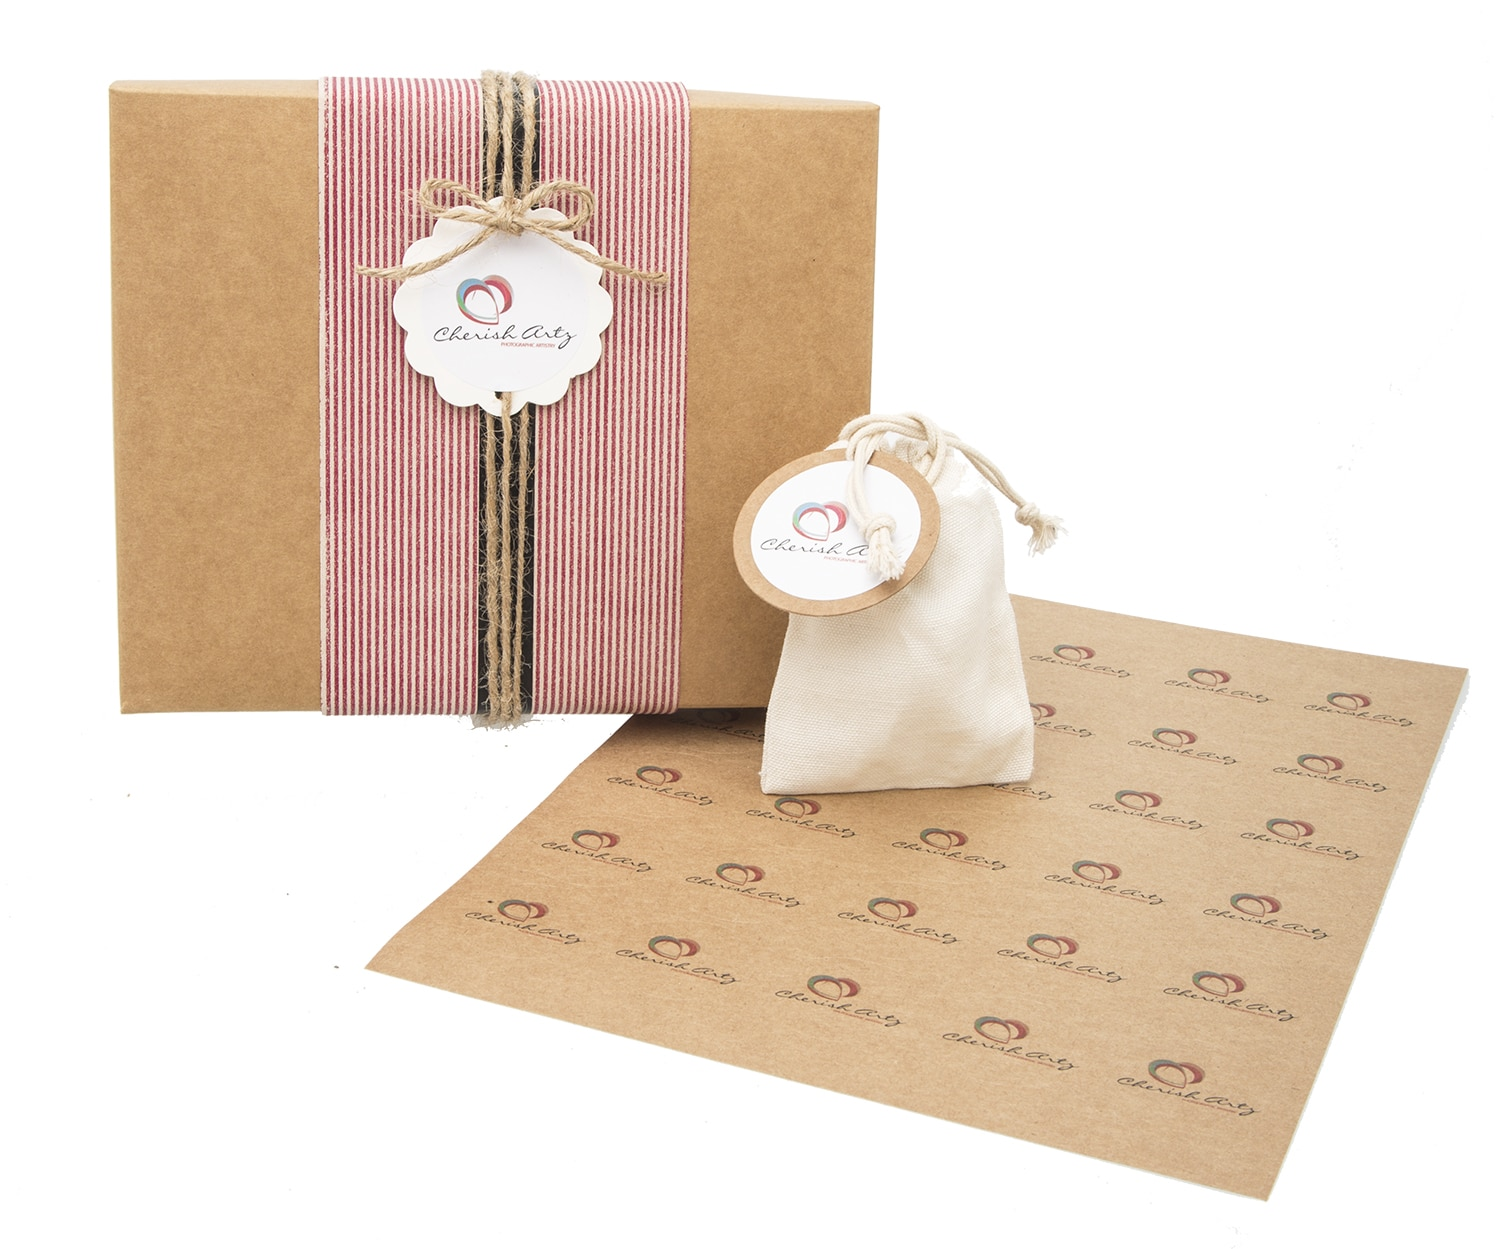 Packaging with WOW factor, make an impact.